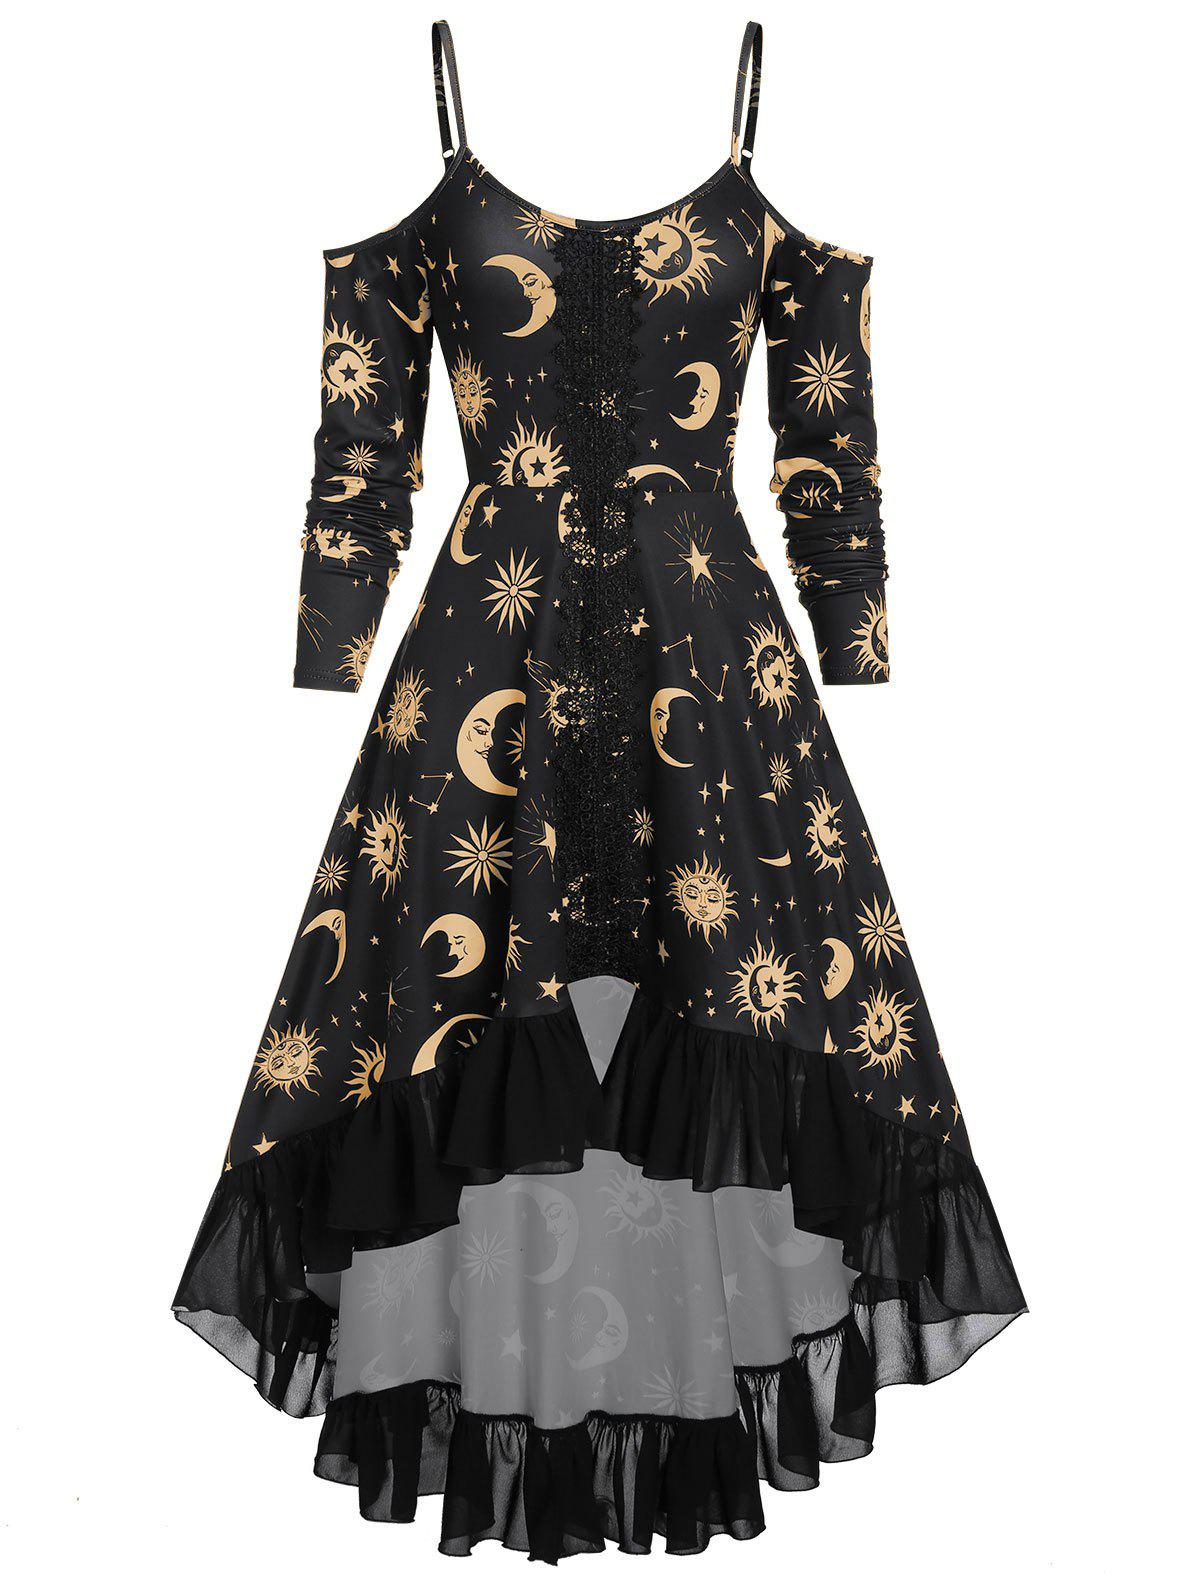 Discount Spaghetti Strap Open Shoulder Sun and Moon Print Gothic Dress